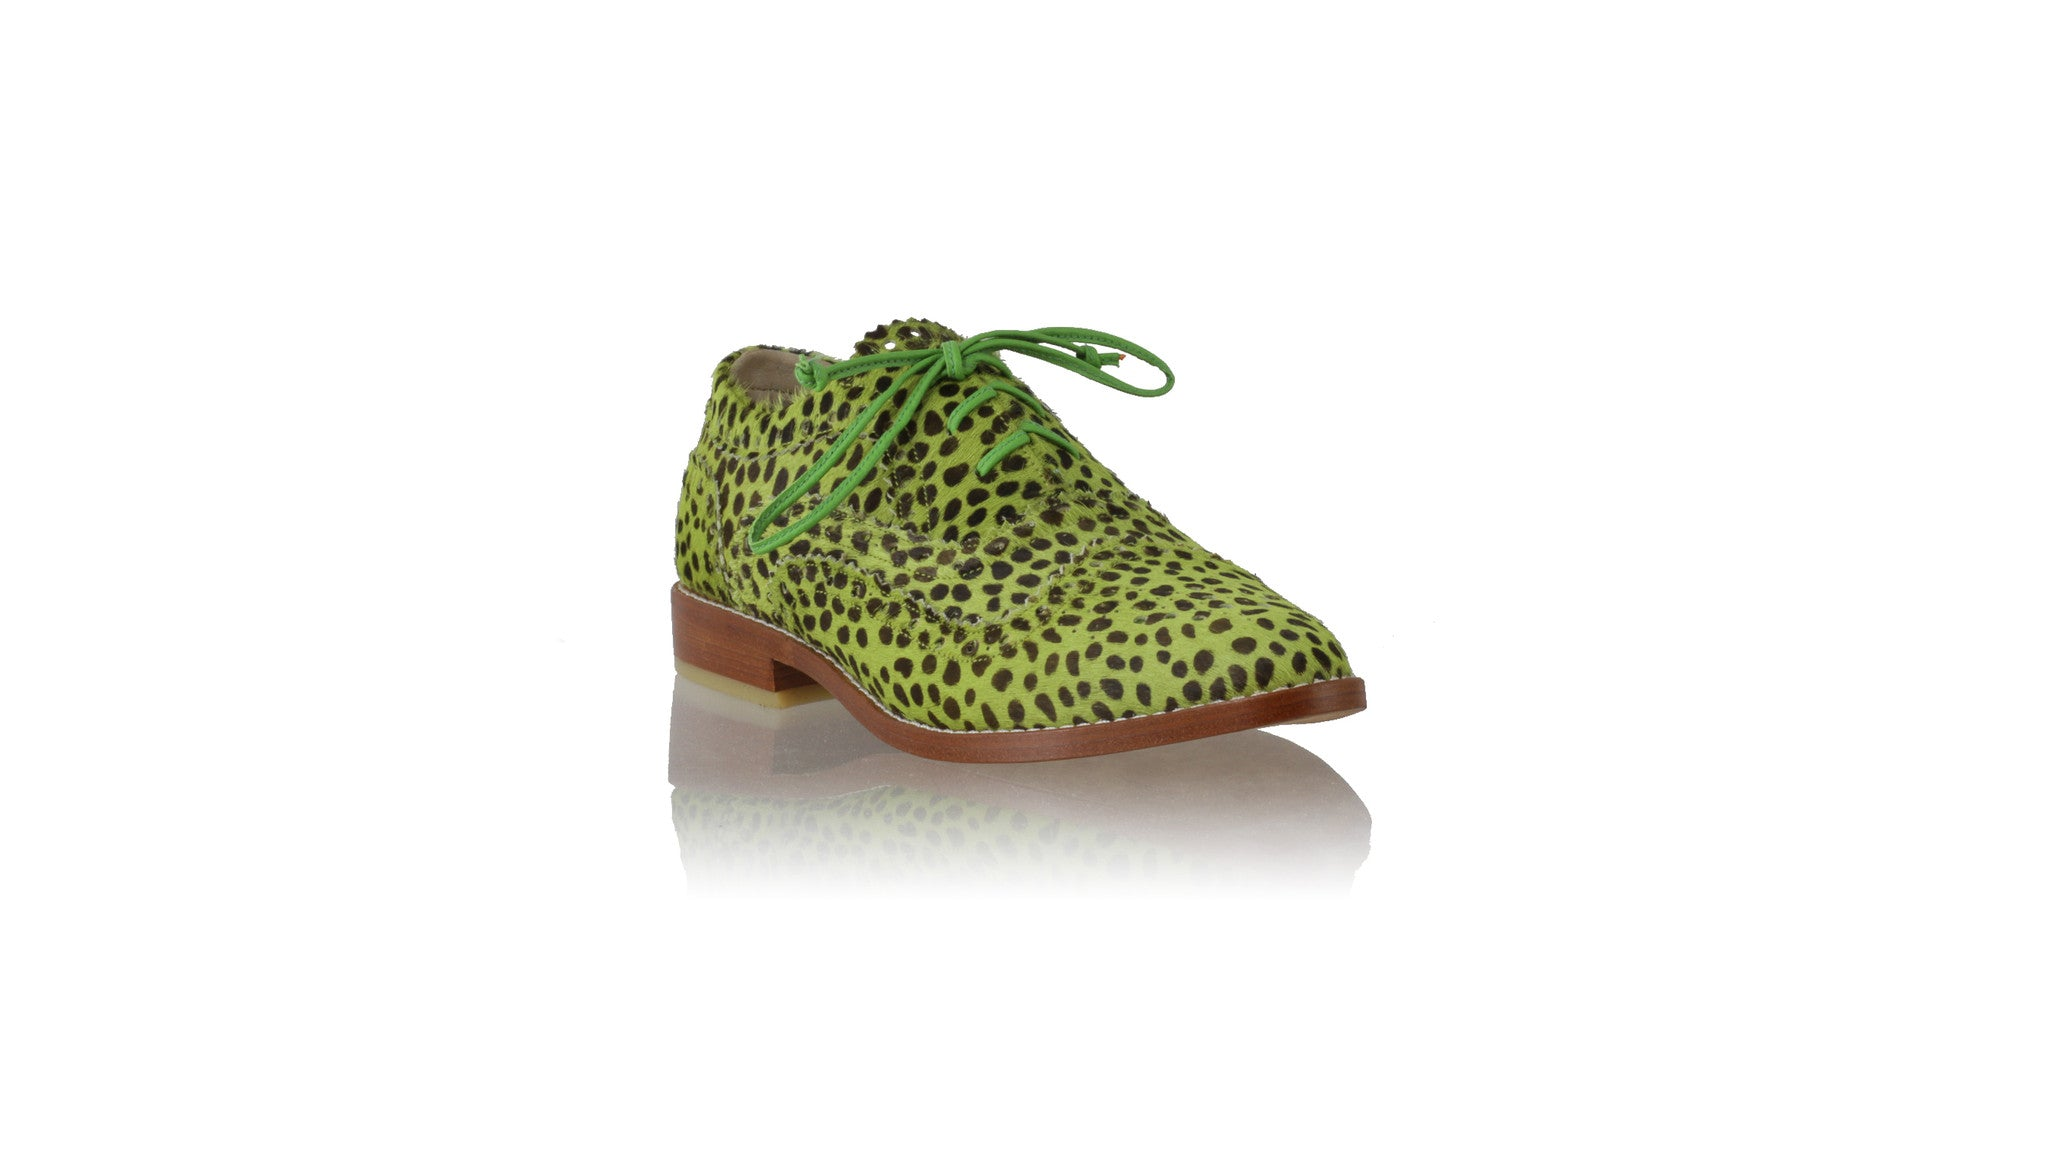 Leather-shoes-Pedro 25mm Flat - Lime Green Pony Leopard Print-flats laceup-NILUH DJELANTIK-NILUH DJELANTIK